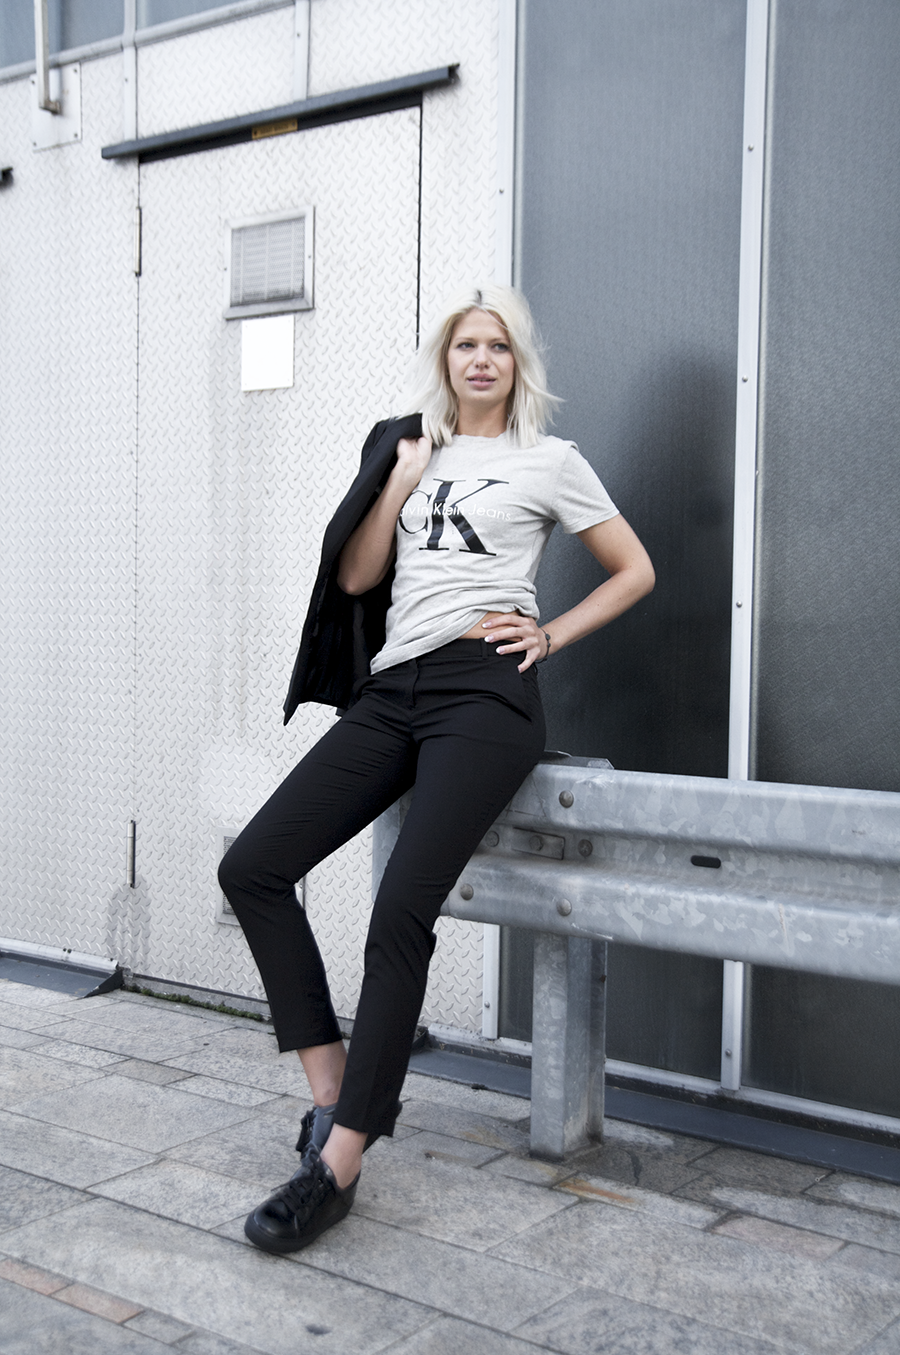 calvin klein tee black suit iceblond hair Sophia Molen photography